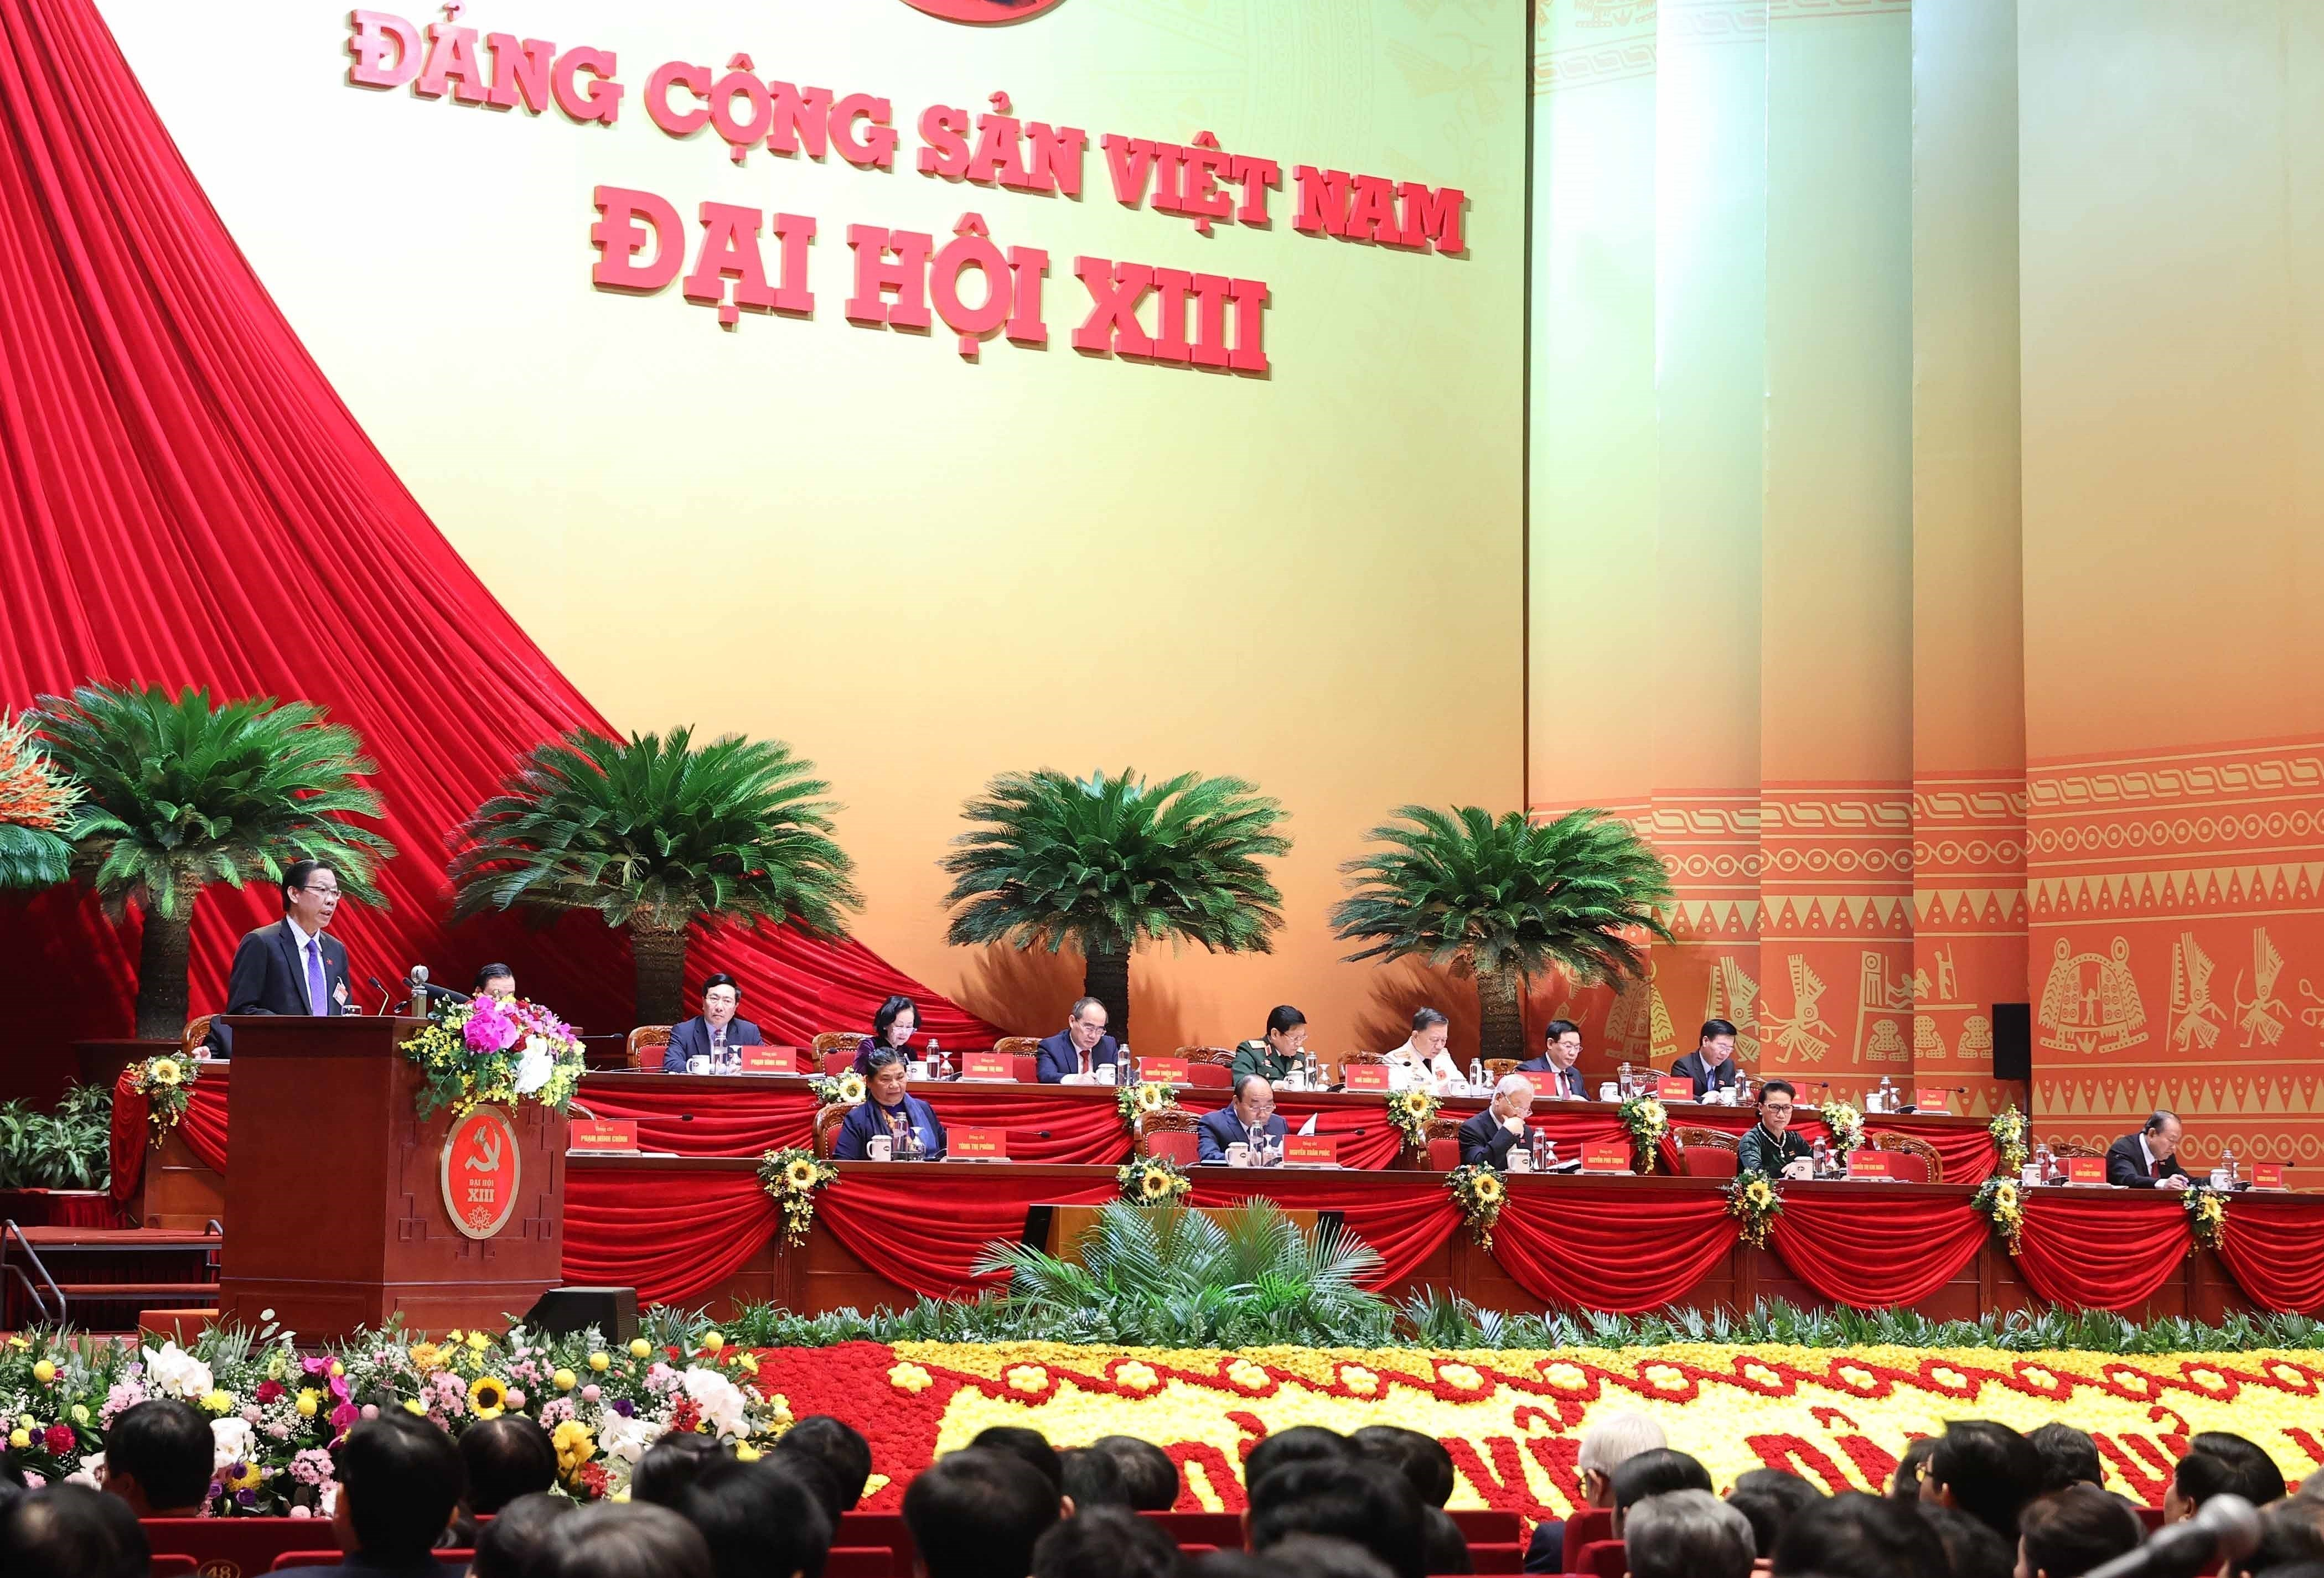 Delegates give more proposals to Party Congress hinh anh 7